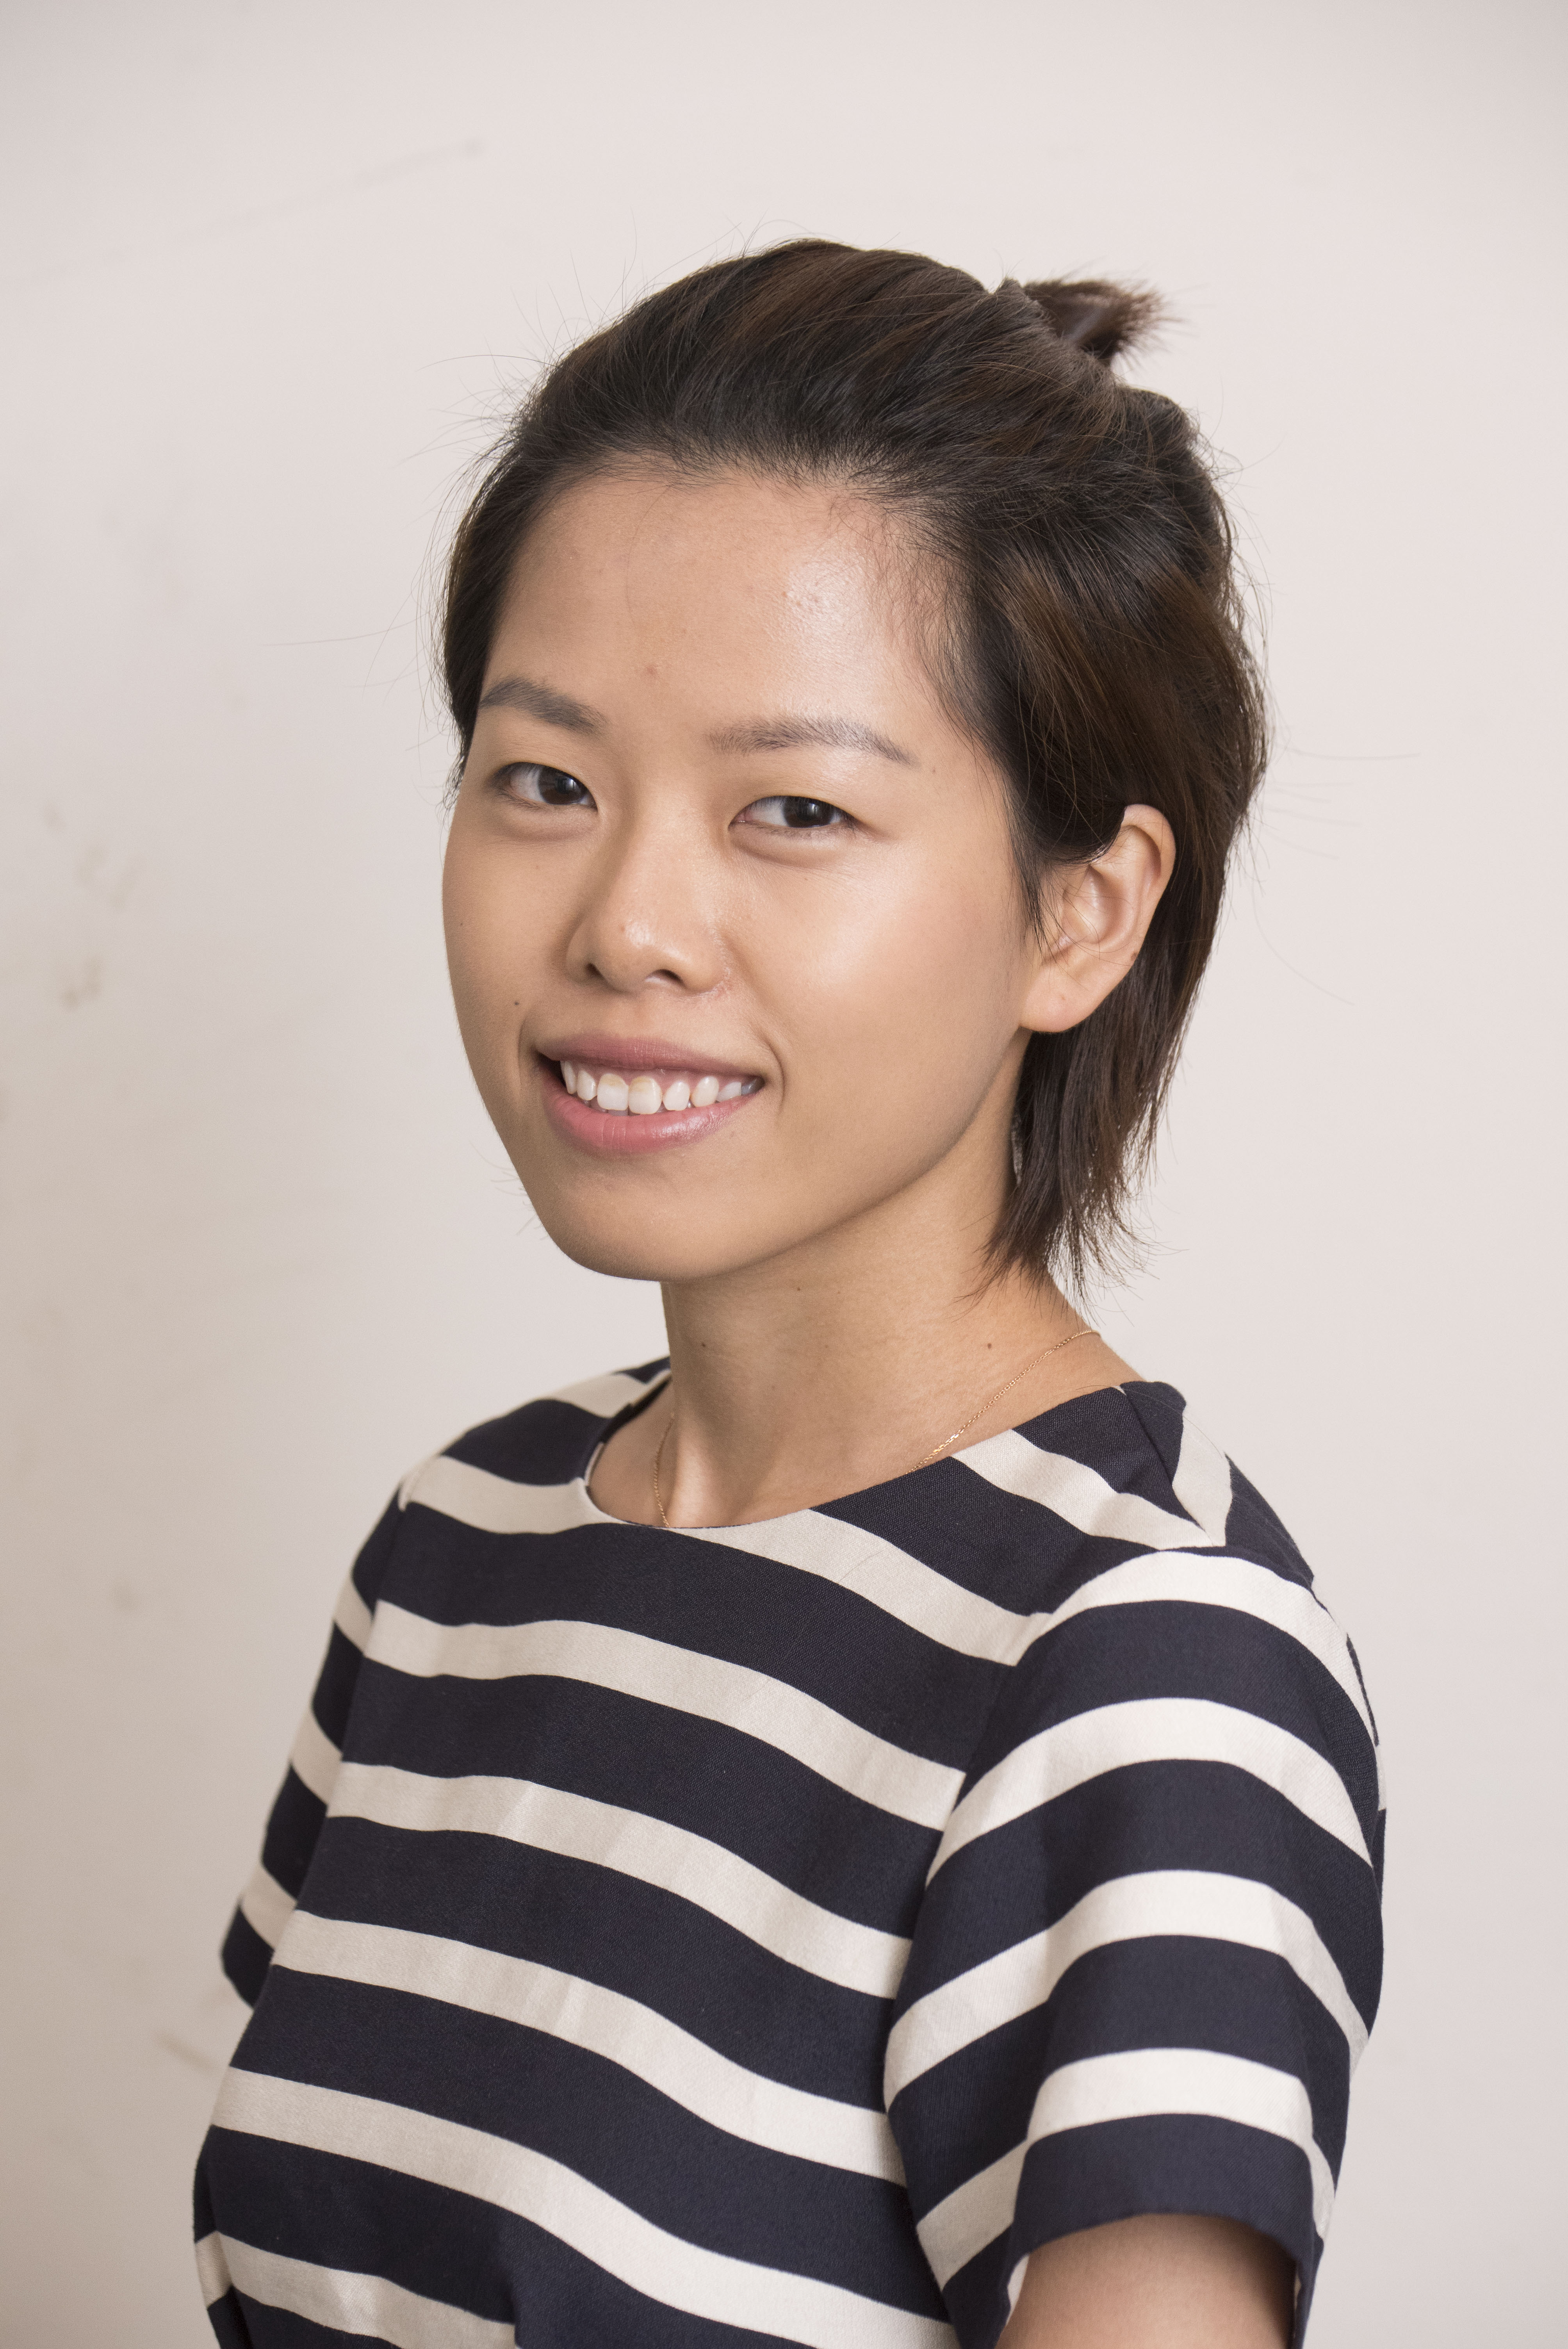 Headshot of Lingyi Zhang